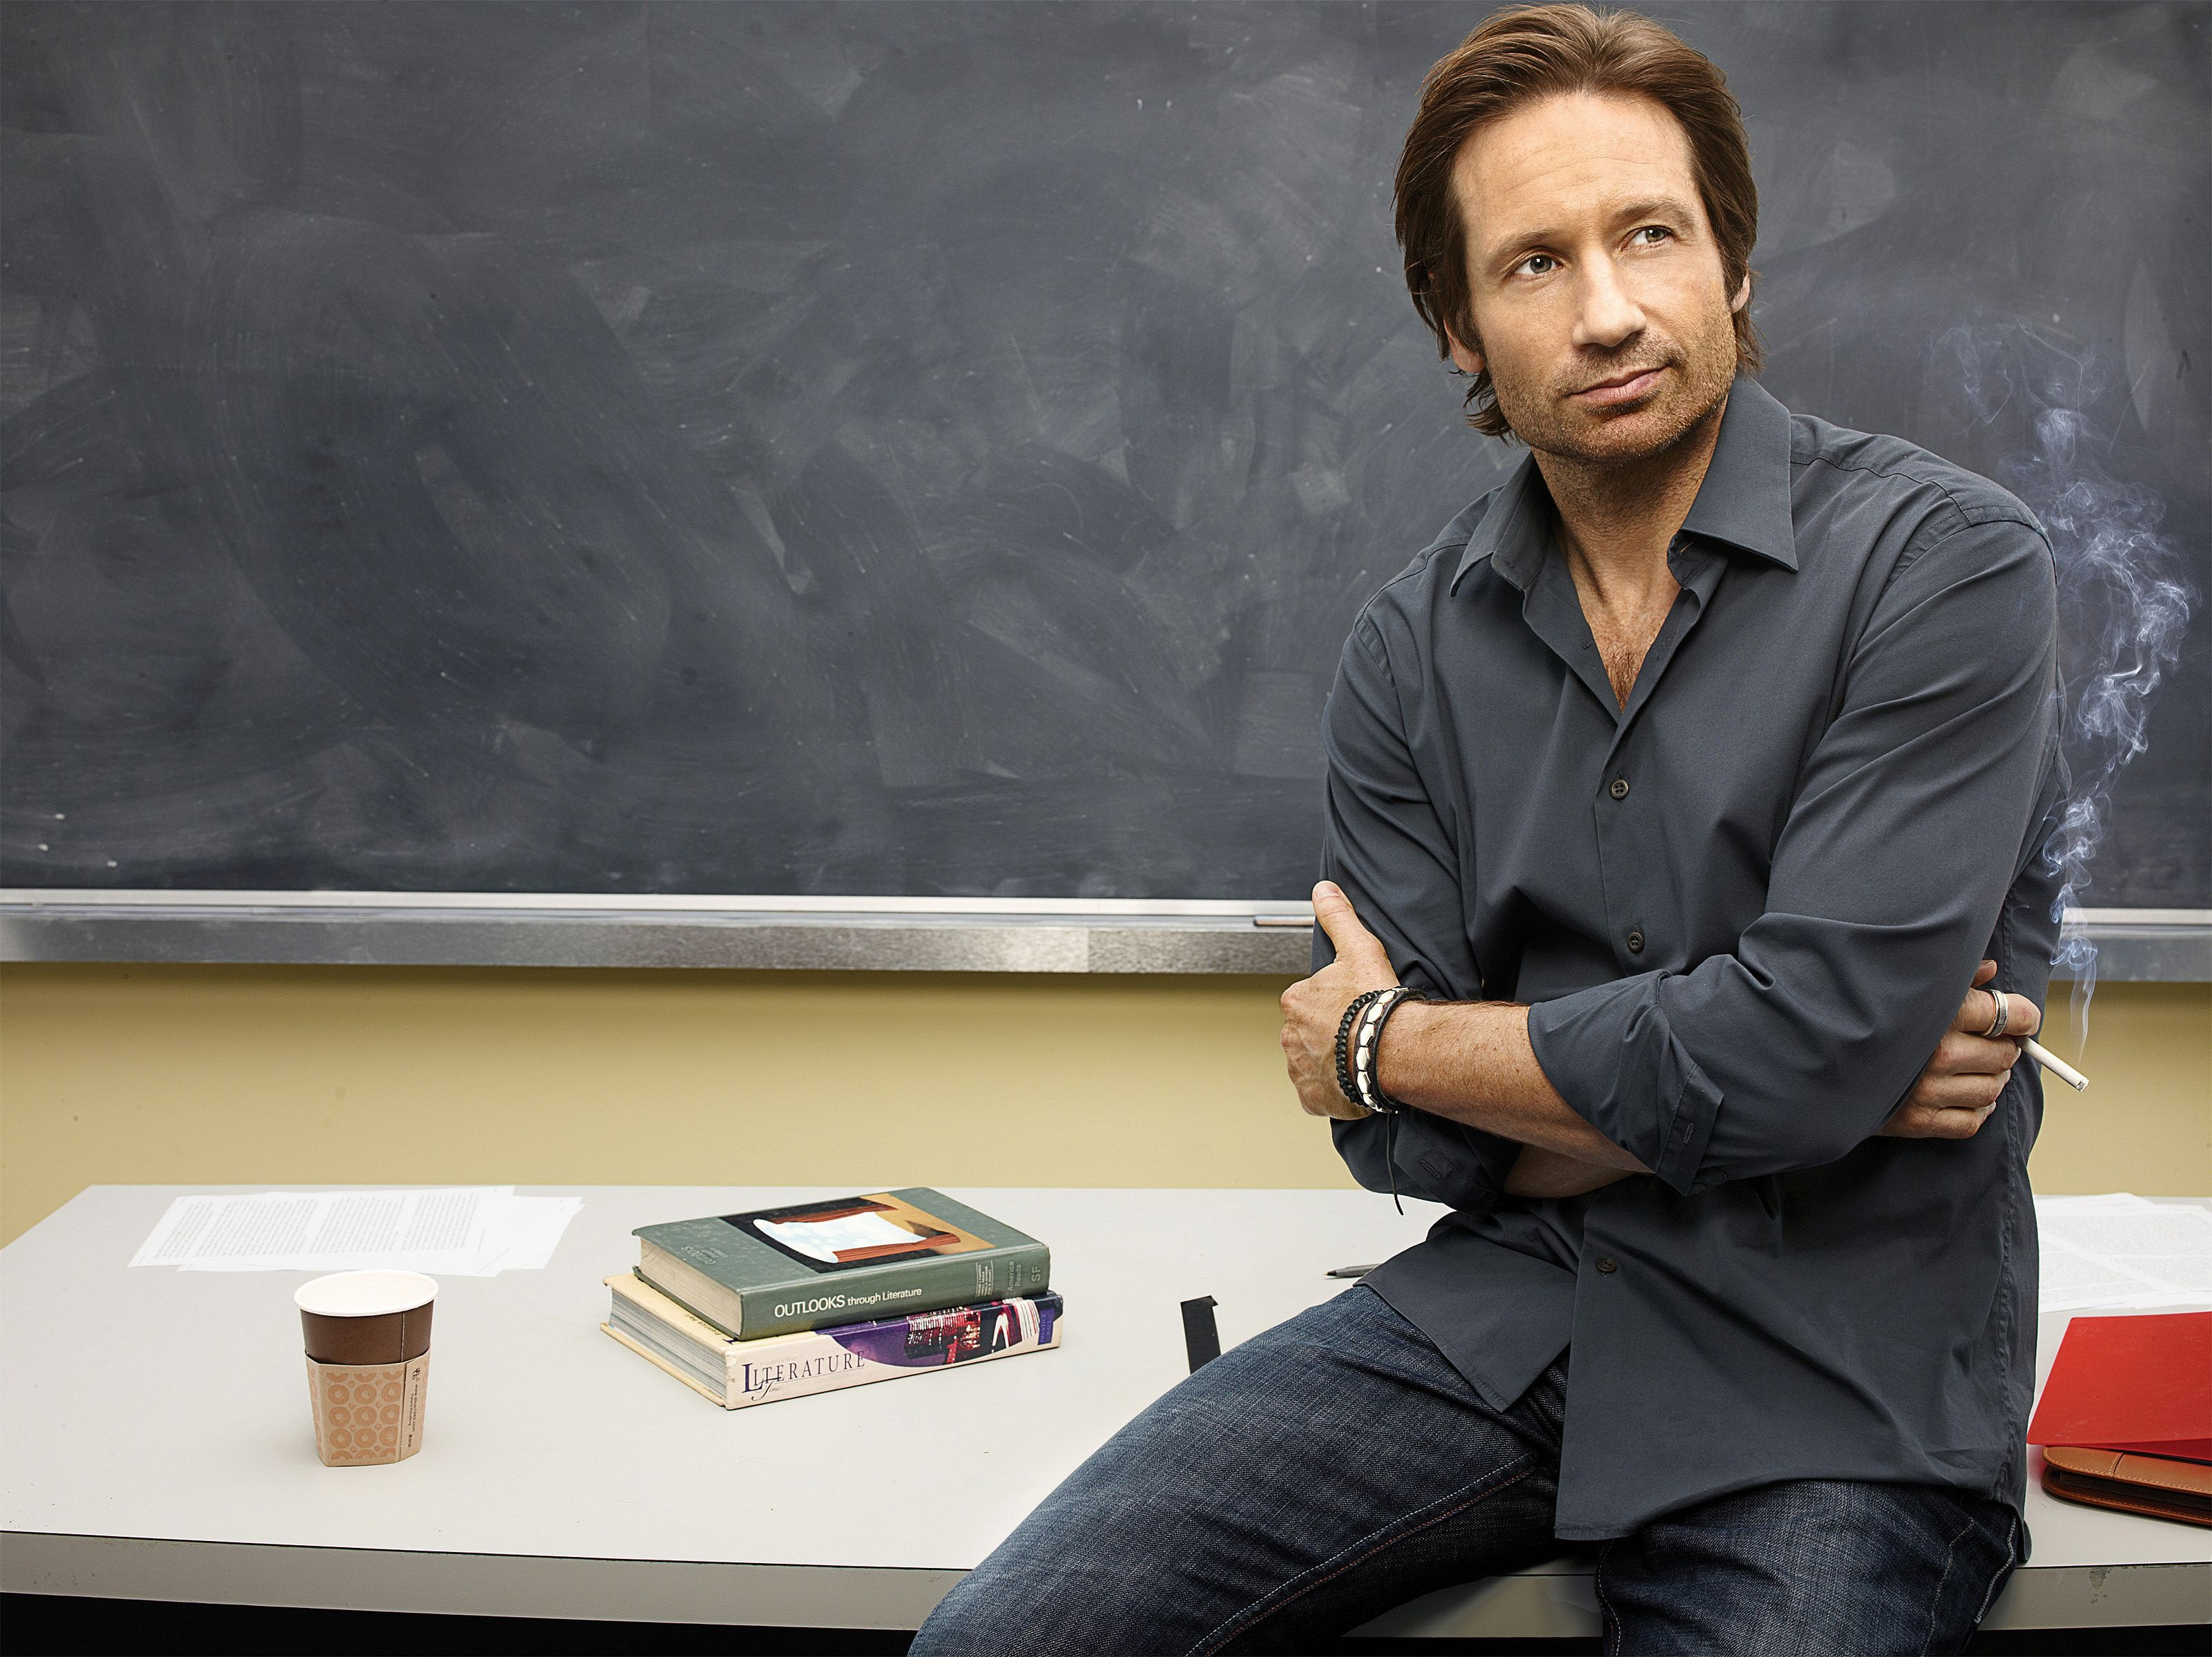 Smoking Quotes Hd Wallpapers David Duchovny Hd Wallpapers Popopics Com